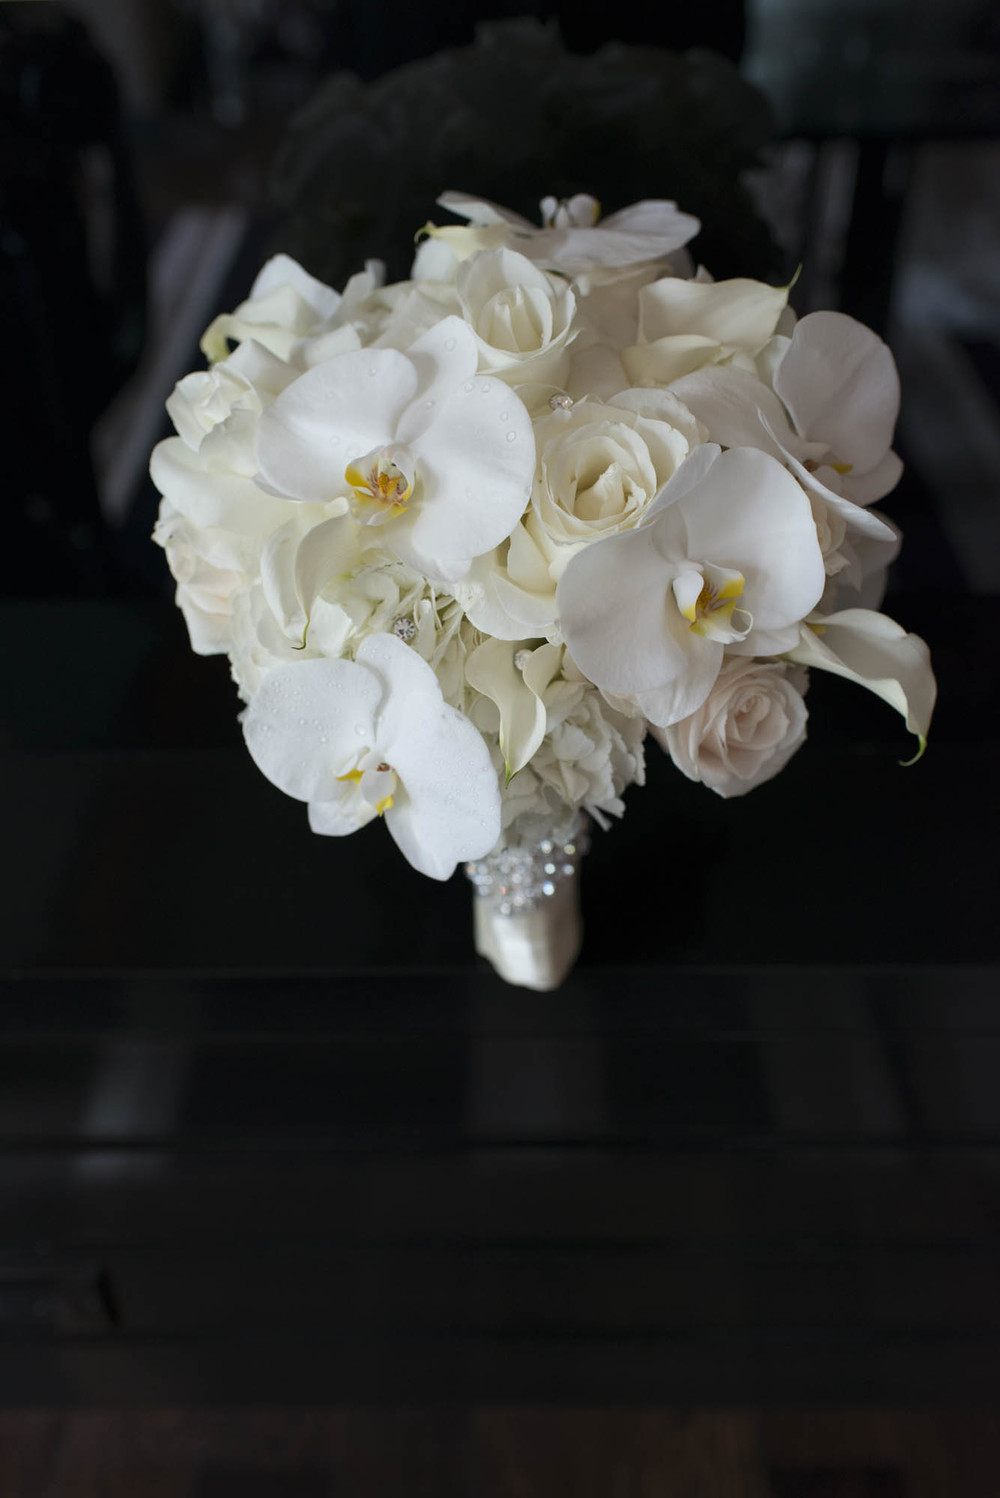 White Bridal Bouquet with orchids, hydrangea, and roses.     CREATIVE PARTNERS:    PHOTOGRAPHY •   AltF Photography  , PLANNING •   Andrea Eppolito Events  , FLORAL AND DECOR DESIGN •  Destinations by Design  , VENUE AND CATERING •   Mandarin Oriental, Las Vegas  , STATIONERY DESIGN •   Paper and Home  ,   BRIDE'S GOWN •  Vera Wang , SHOES •  Jimmy Choo ,   GROOM'S FORMAL WEAR •   Vera Wang  ,   ENGAGEMENT RING •  Delage Jewelers ,   WEDDING BANDS •  T-Birds Jewels   ,   CAKE DESIGN •  Mandarin Oriental Las Vegas , DRAPING;   DANCE FLOOR DESIGN AND PRODUCTION •  Destination by Design ,   LIVE EVENT ARTIST •  Sam Day , ENTERTAINMENT   •  Lucky Devils Band , CINEMATOGRAPHY •  Something New